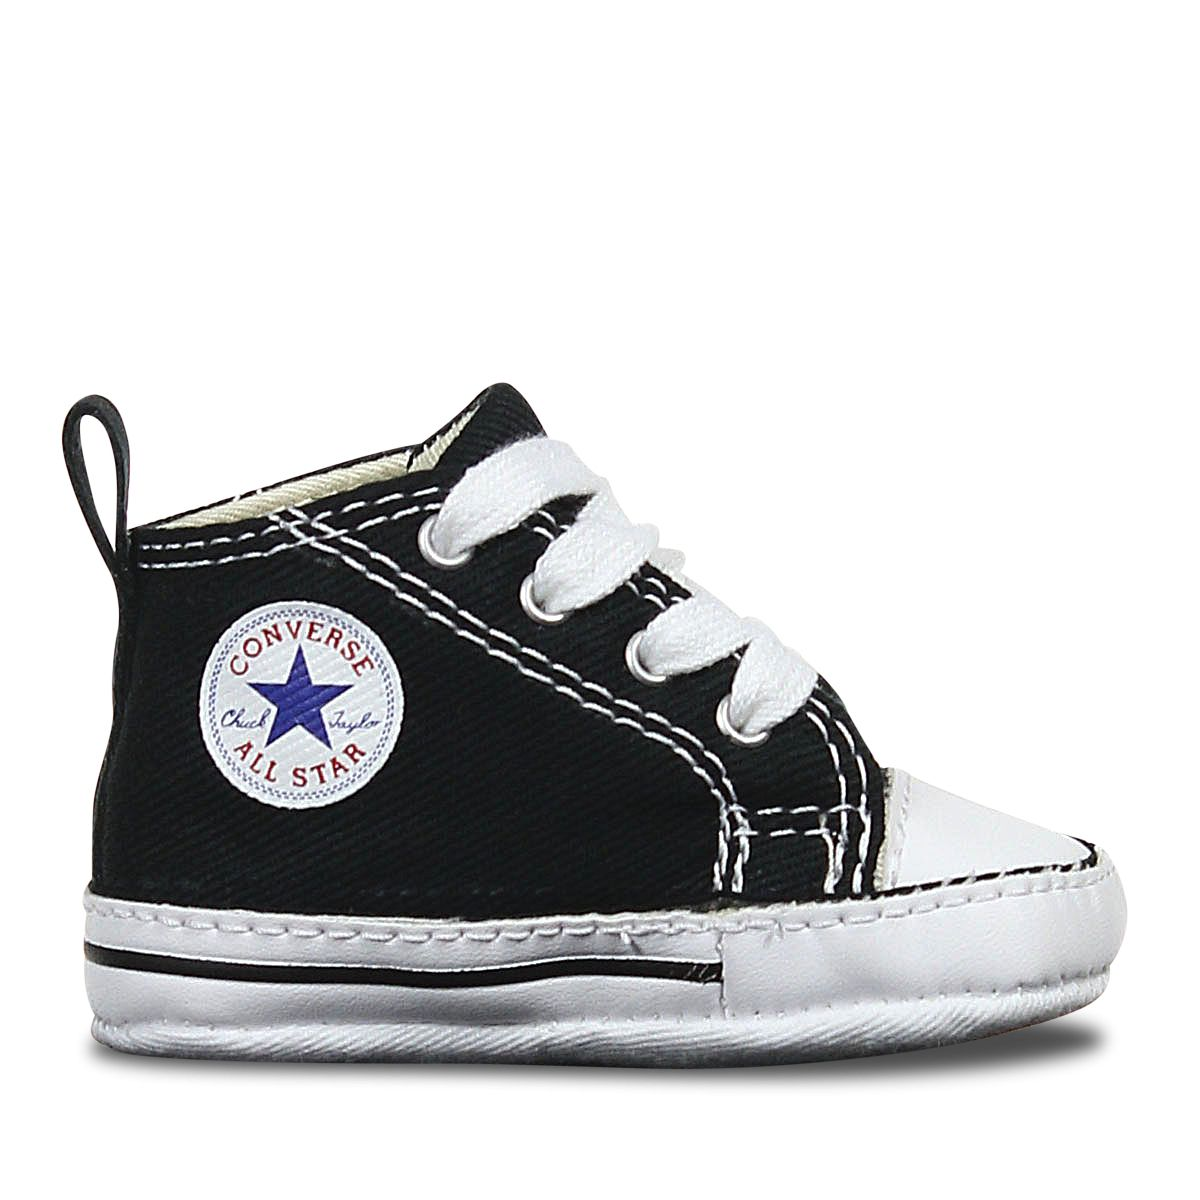 Baby converse shoes, Converse classic